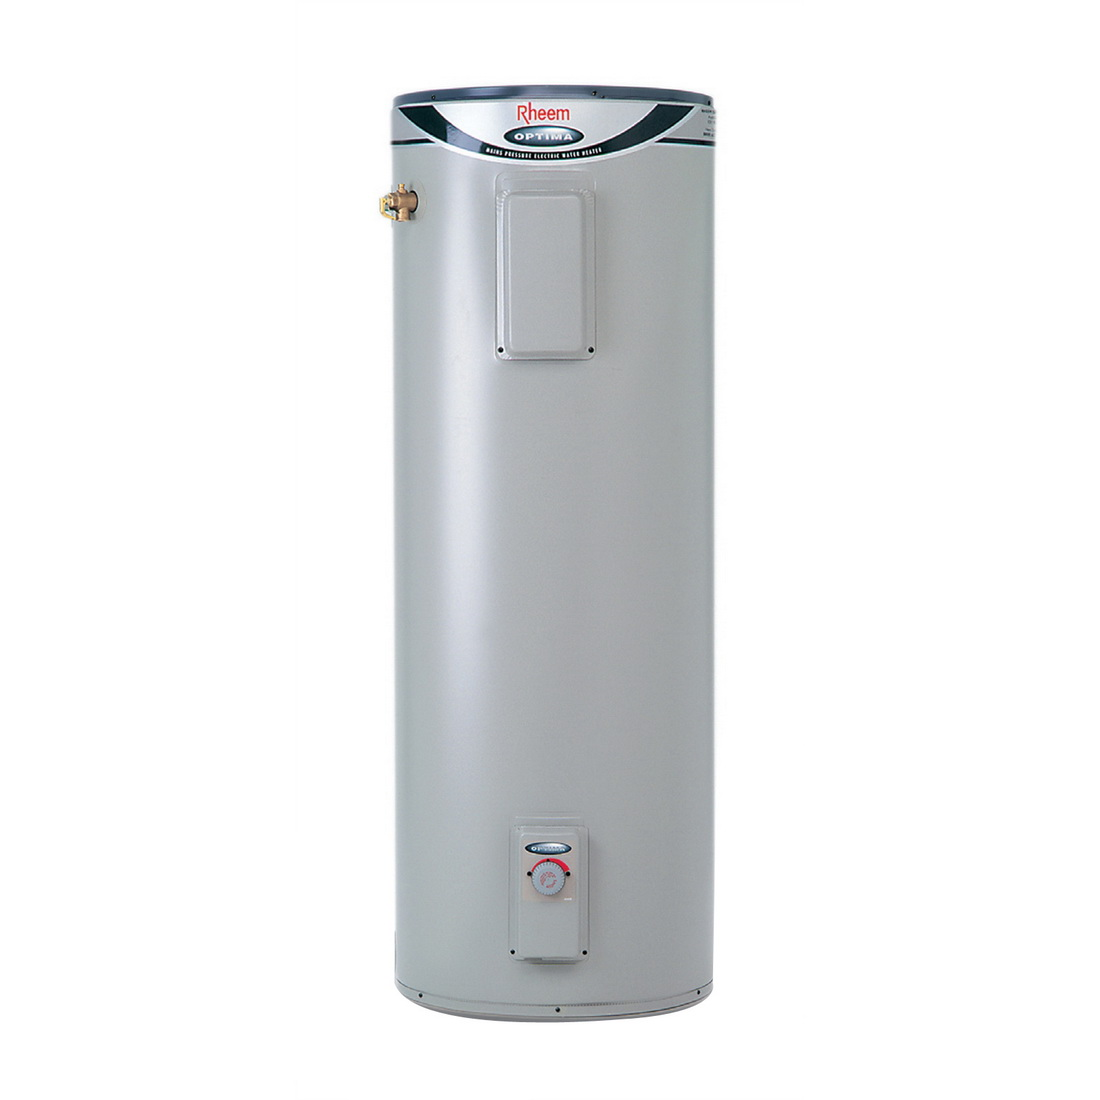 Rheem Optima Mains Pressure Electric Hot Water Cylinder 293L 580 x 1825mm 2 x 3kW 91330025